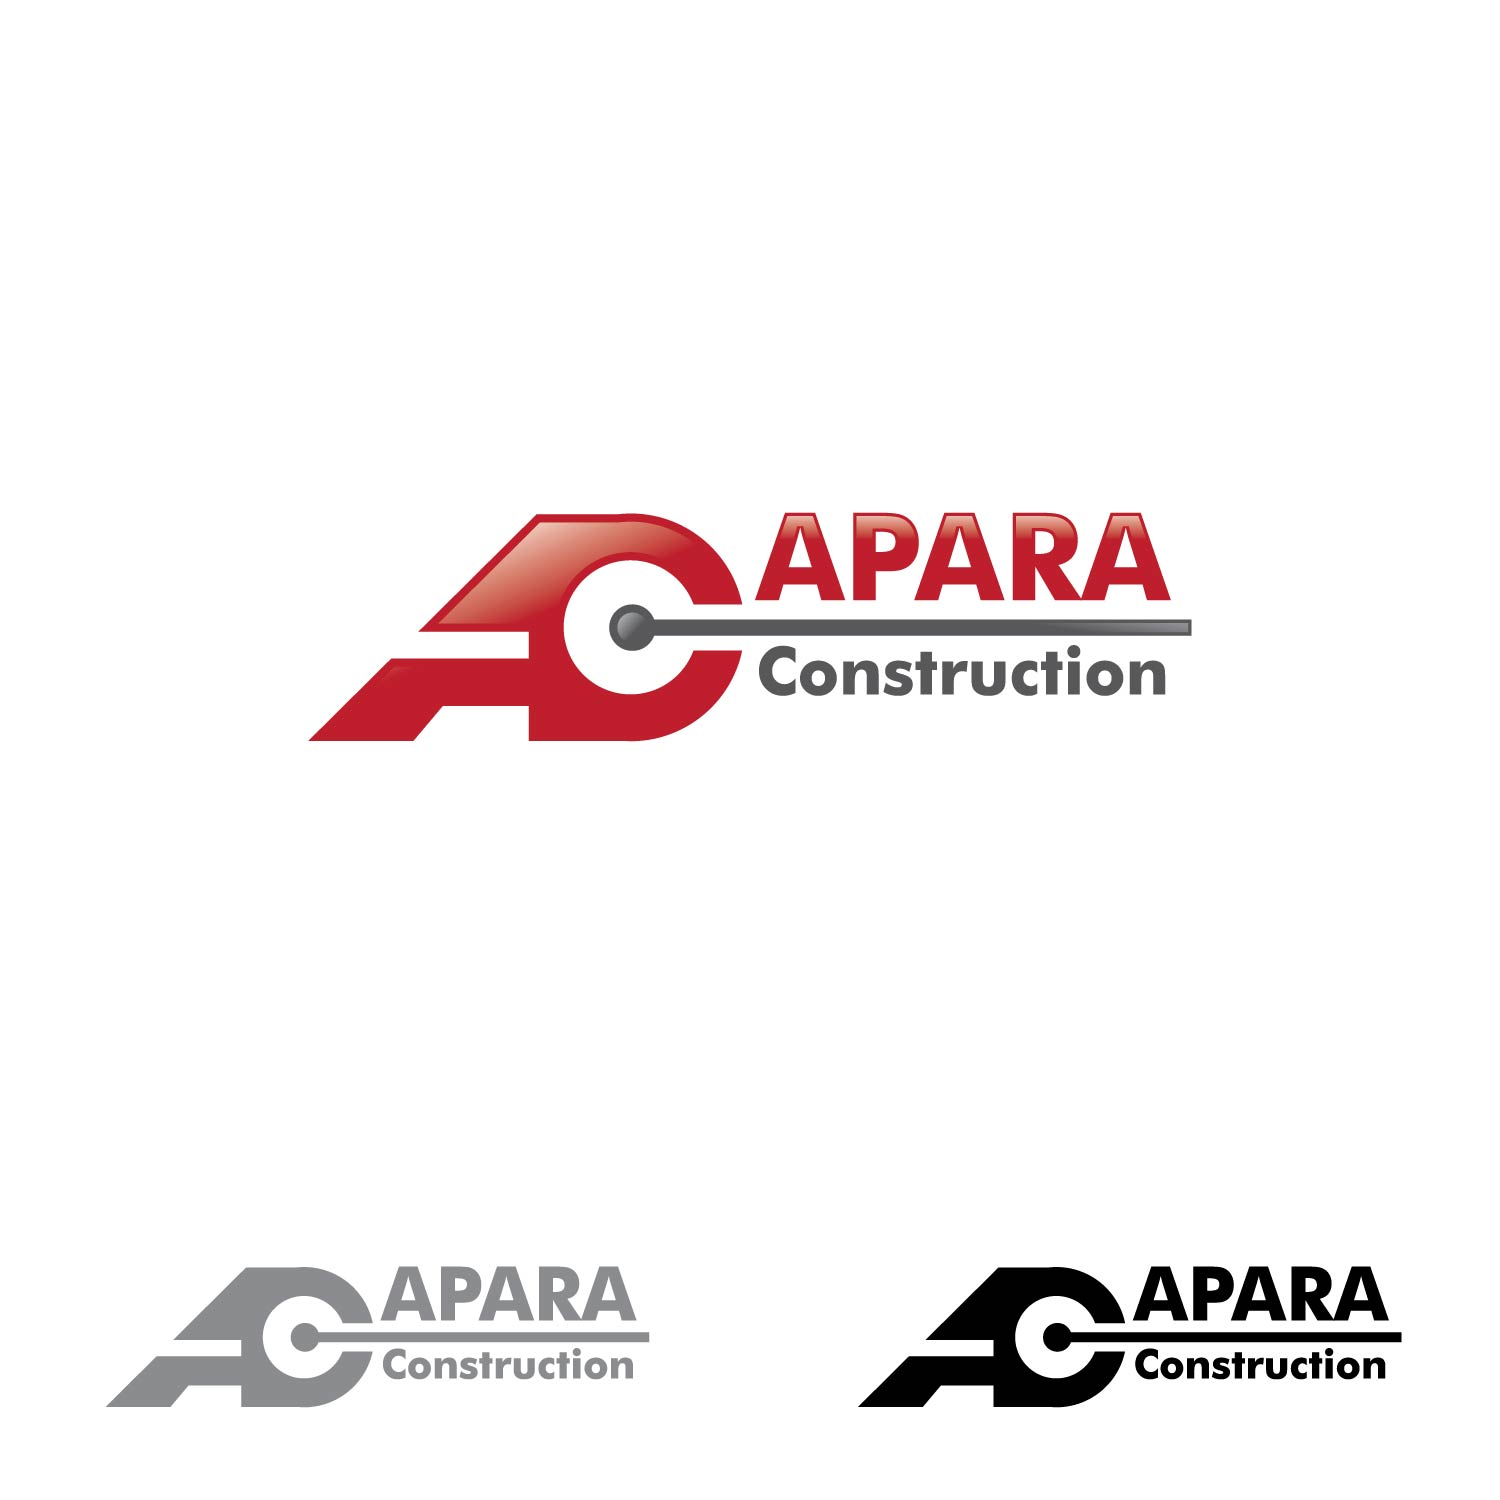 Logo Design by lagalag - Entry No. 14 in the Logo Design Contest Apara Construction Logo Design.